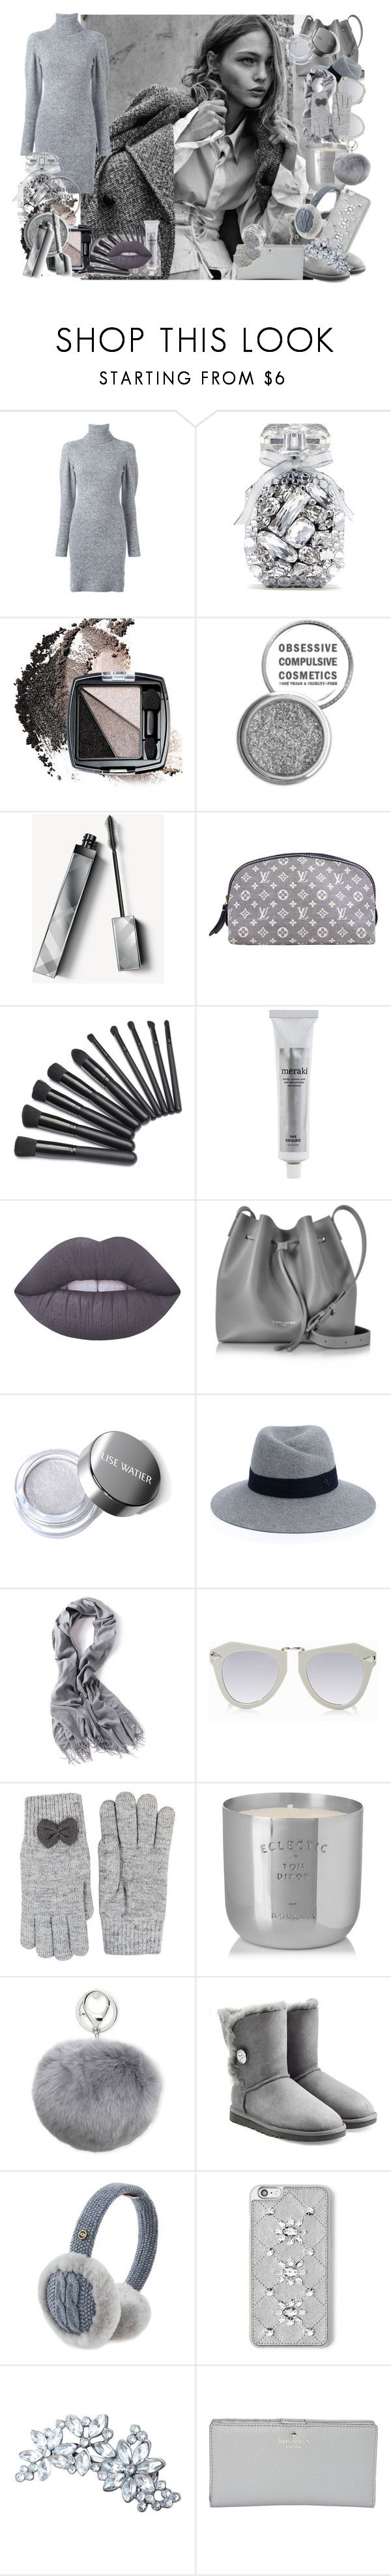 """""""Faded"""" by colourlover24 ❤ liked on Polyvore featuring Lala Berlin, Victoria's Secret, Avon, Obsessive Compulsive Cosmetics, Burberry, Louis Vuitton, Meraki, Lime Crime, Lancaster and Maison Michel"""